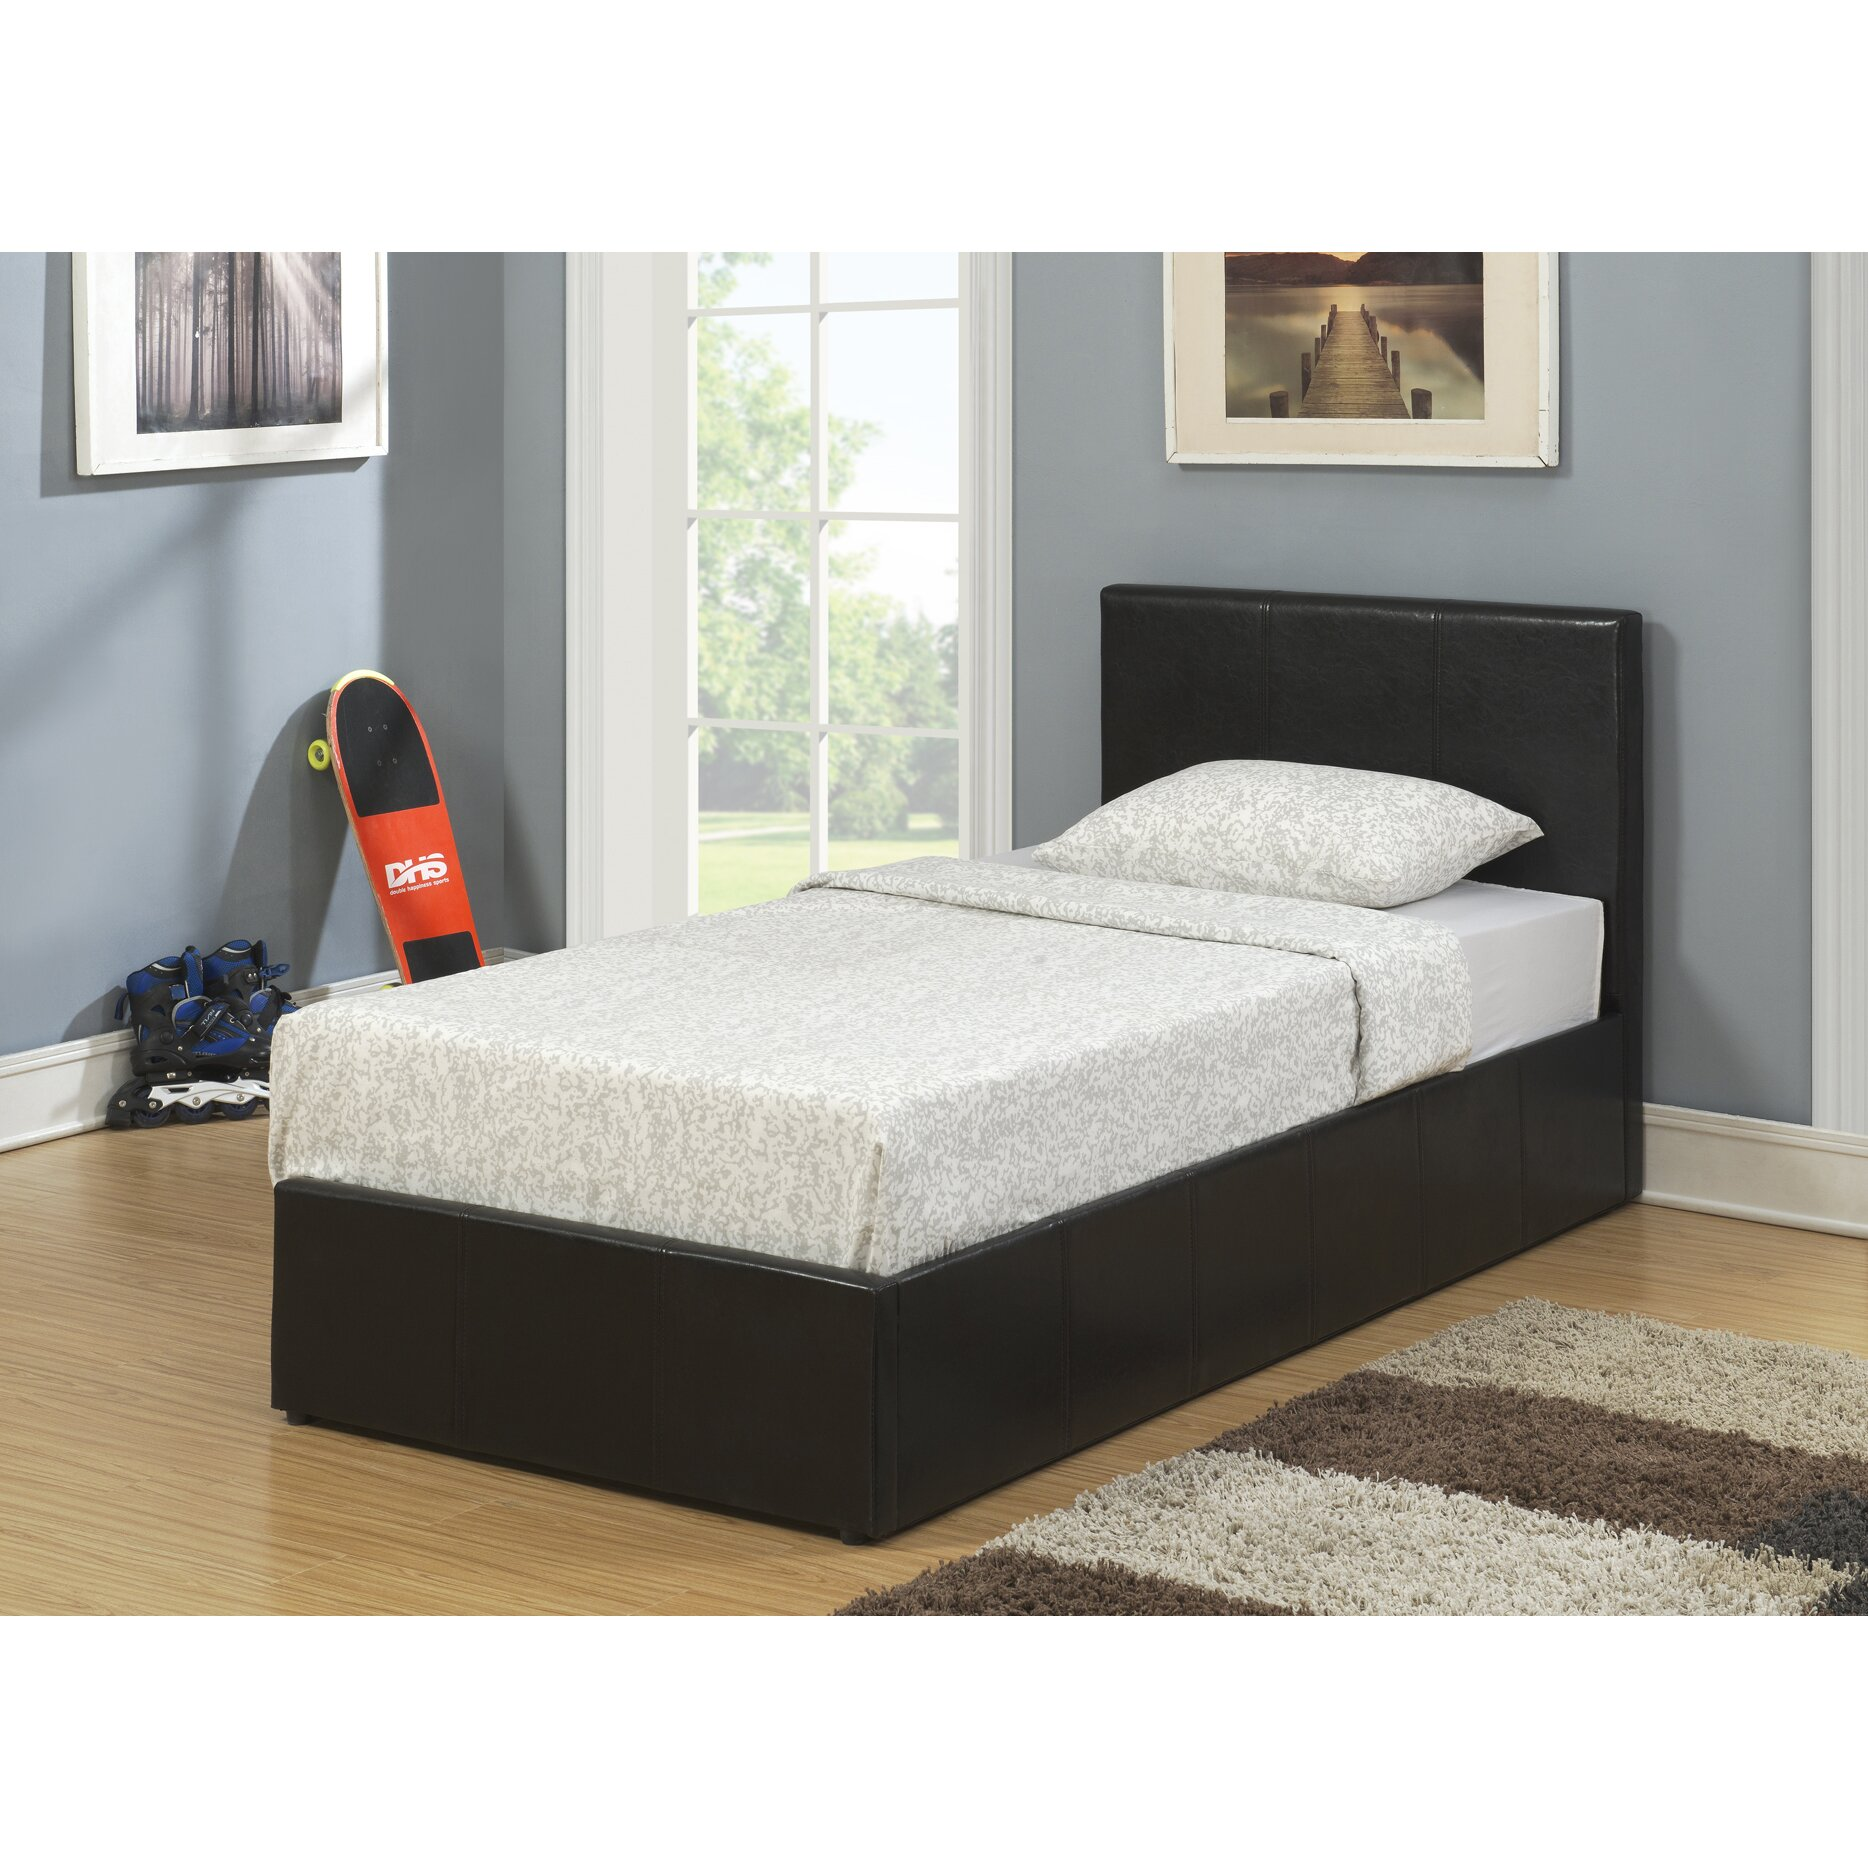 Ottoman Bedroom Home Haus Essex Upholstered Ottoman Bed Reviews Wayfaircouk